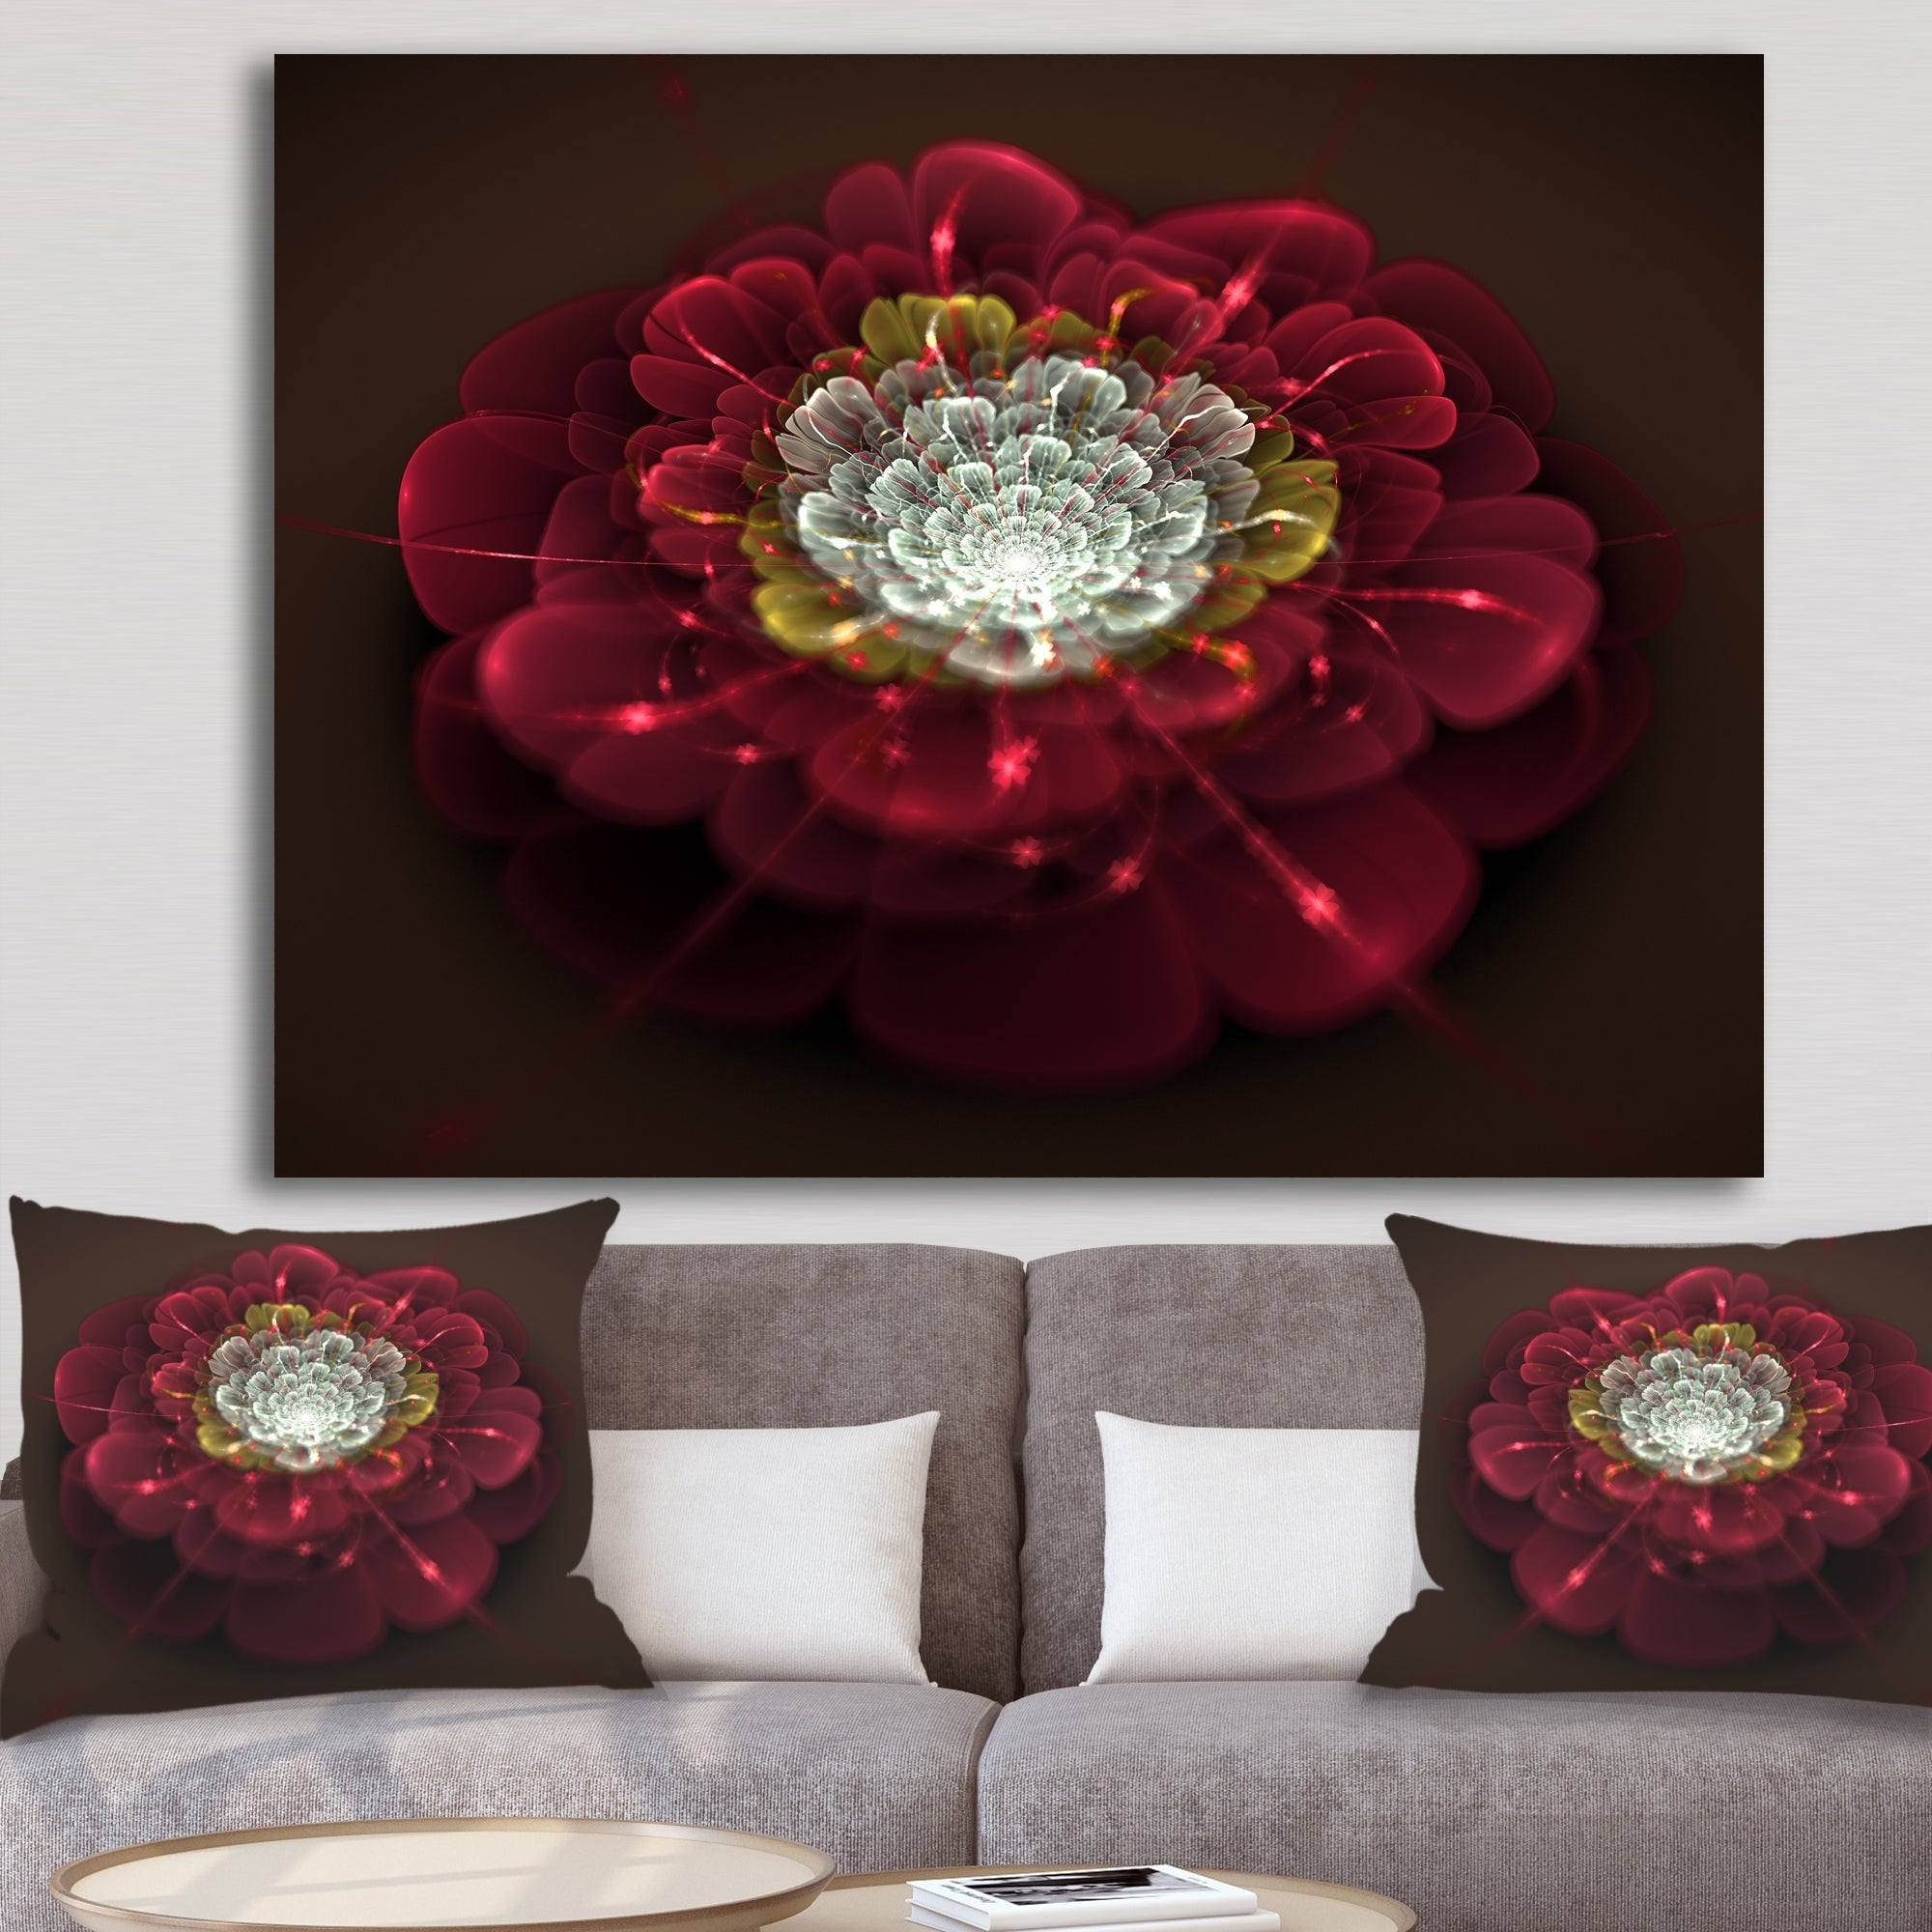 Red-Fractal-Flower-with-White-039-Floral-Digital-Art-Canvas-Small thumbnail 7